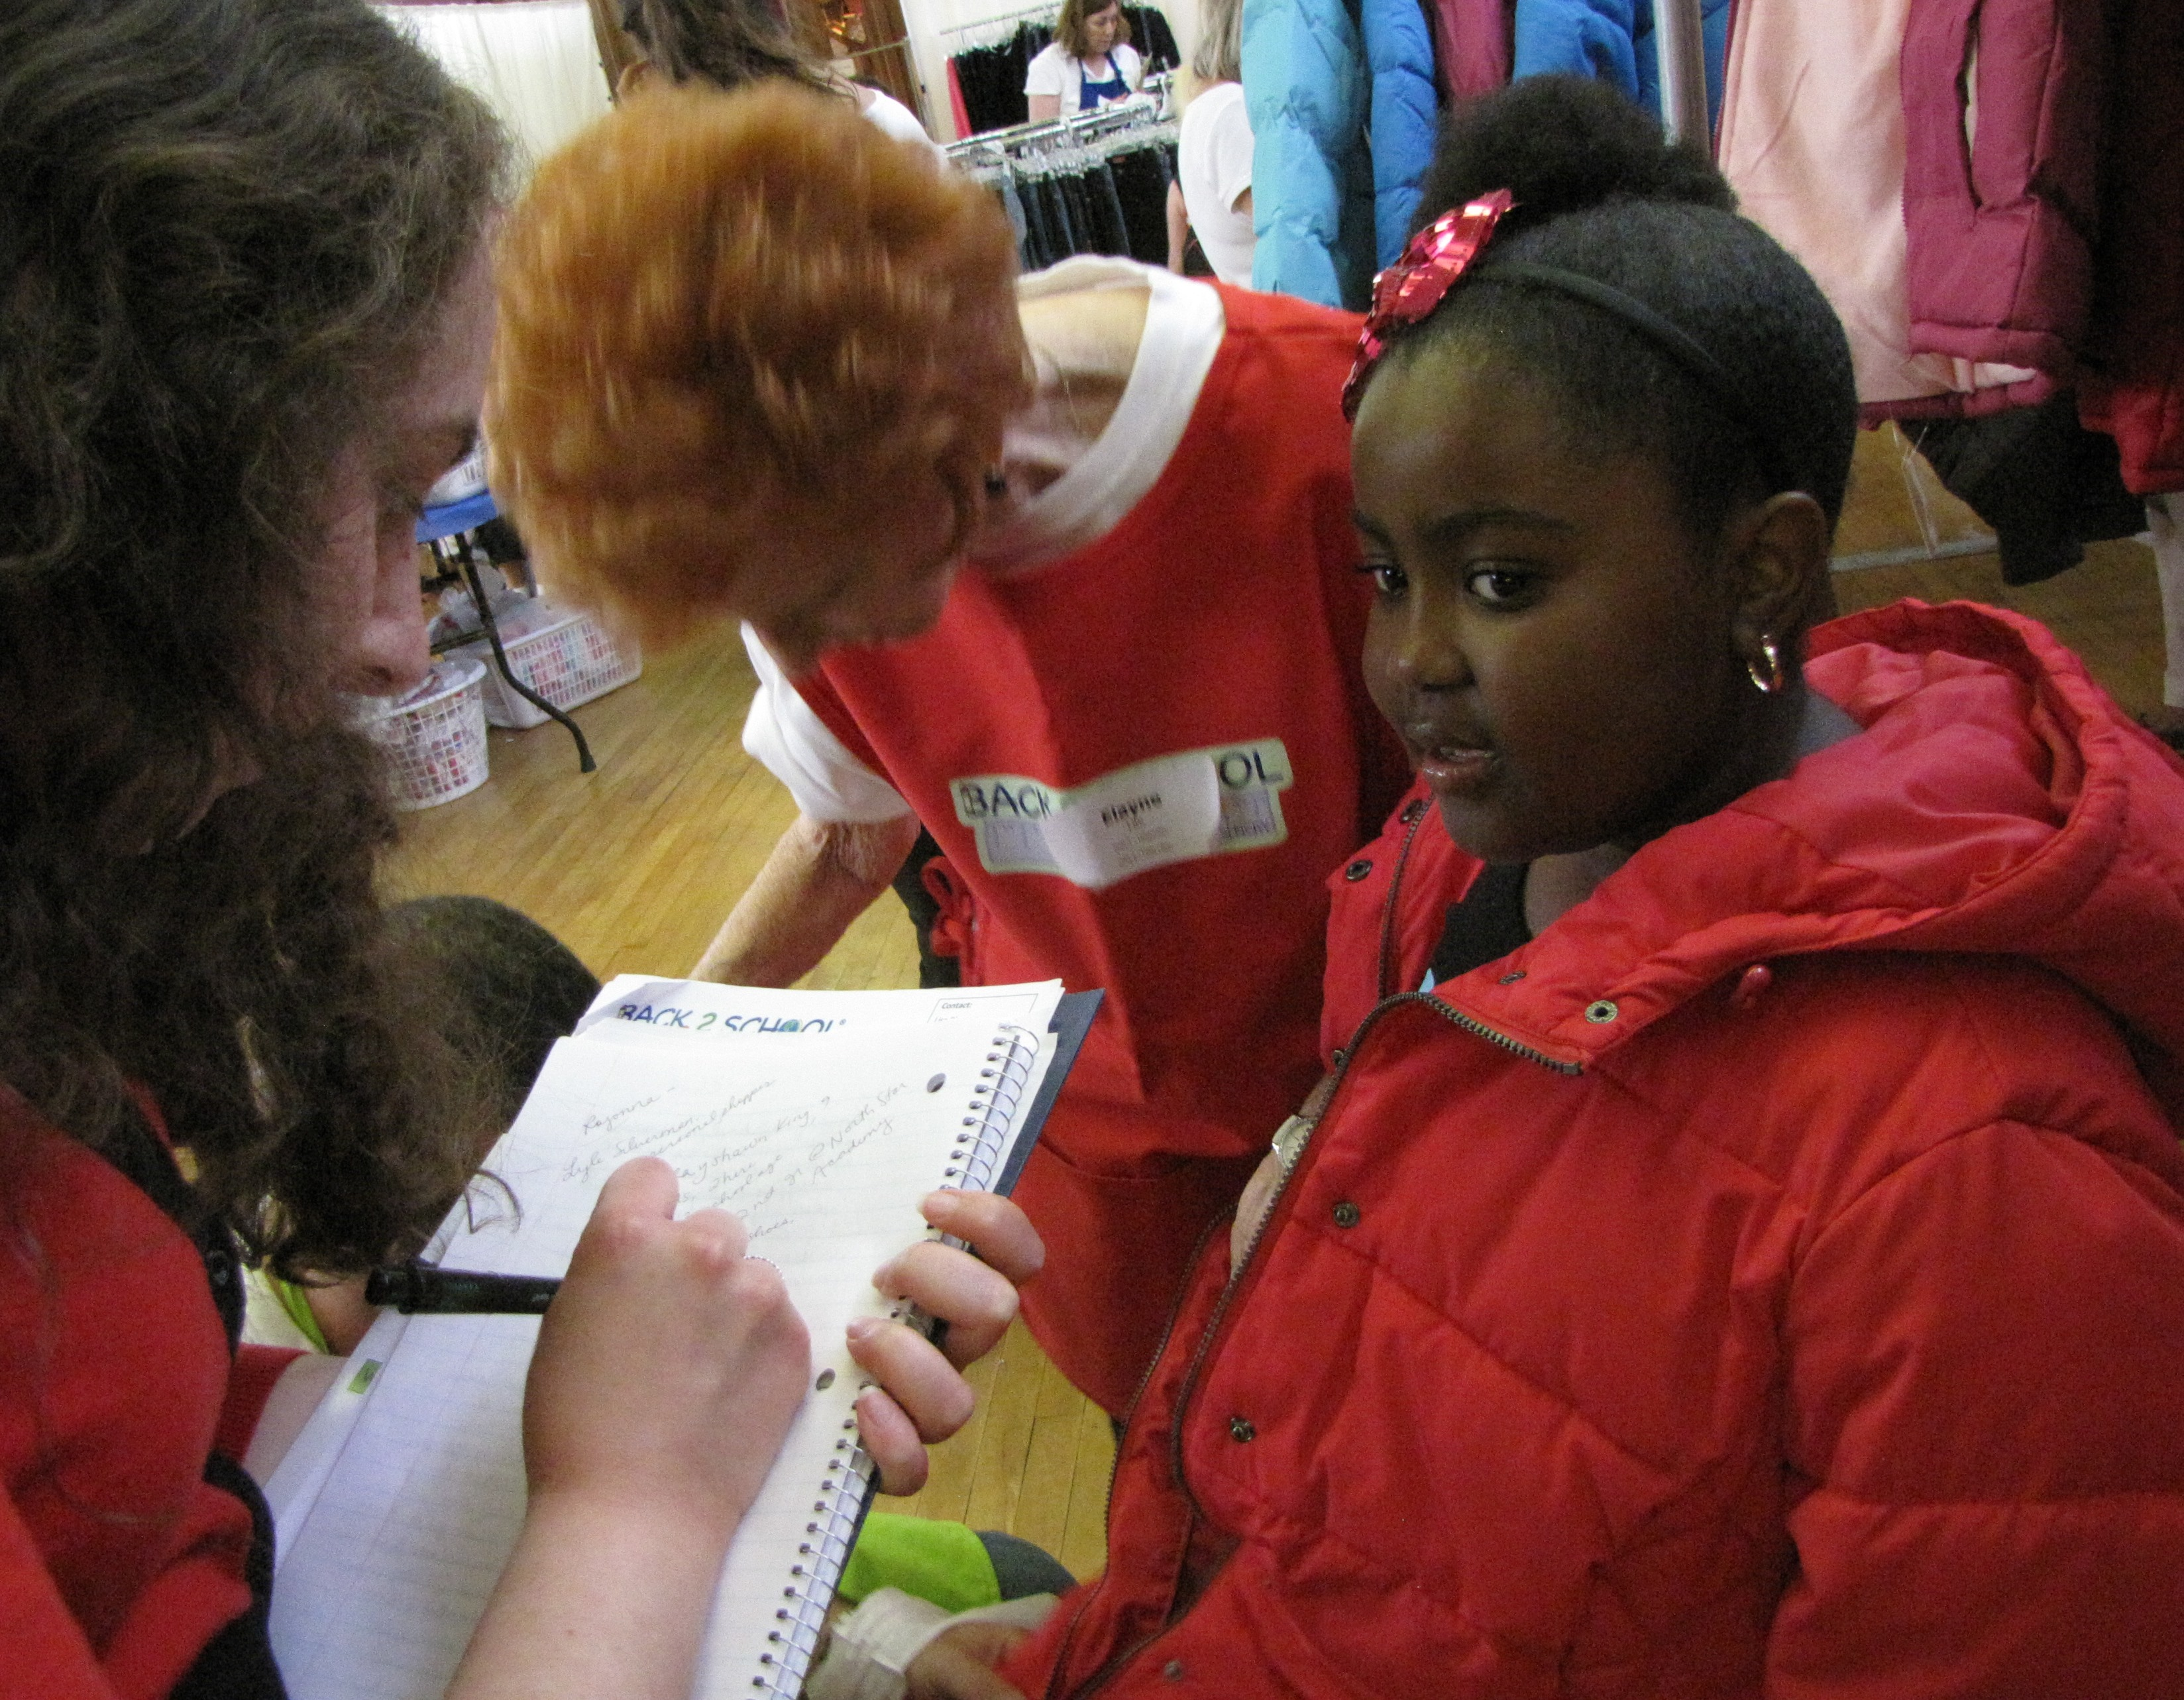 Rayonna interviewed by NJ.com reporter Jessica Mazzola